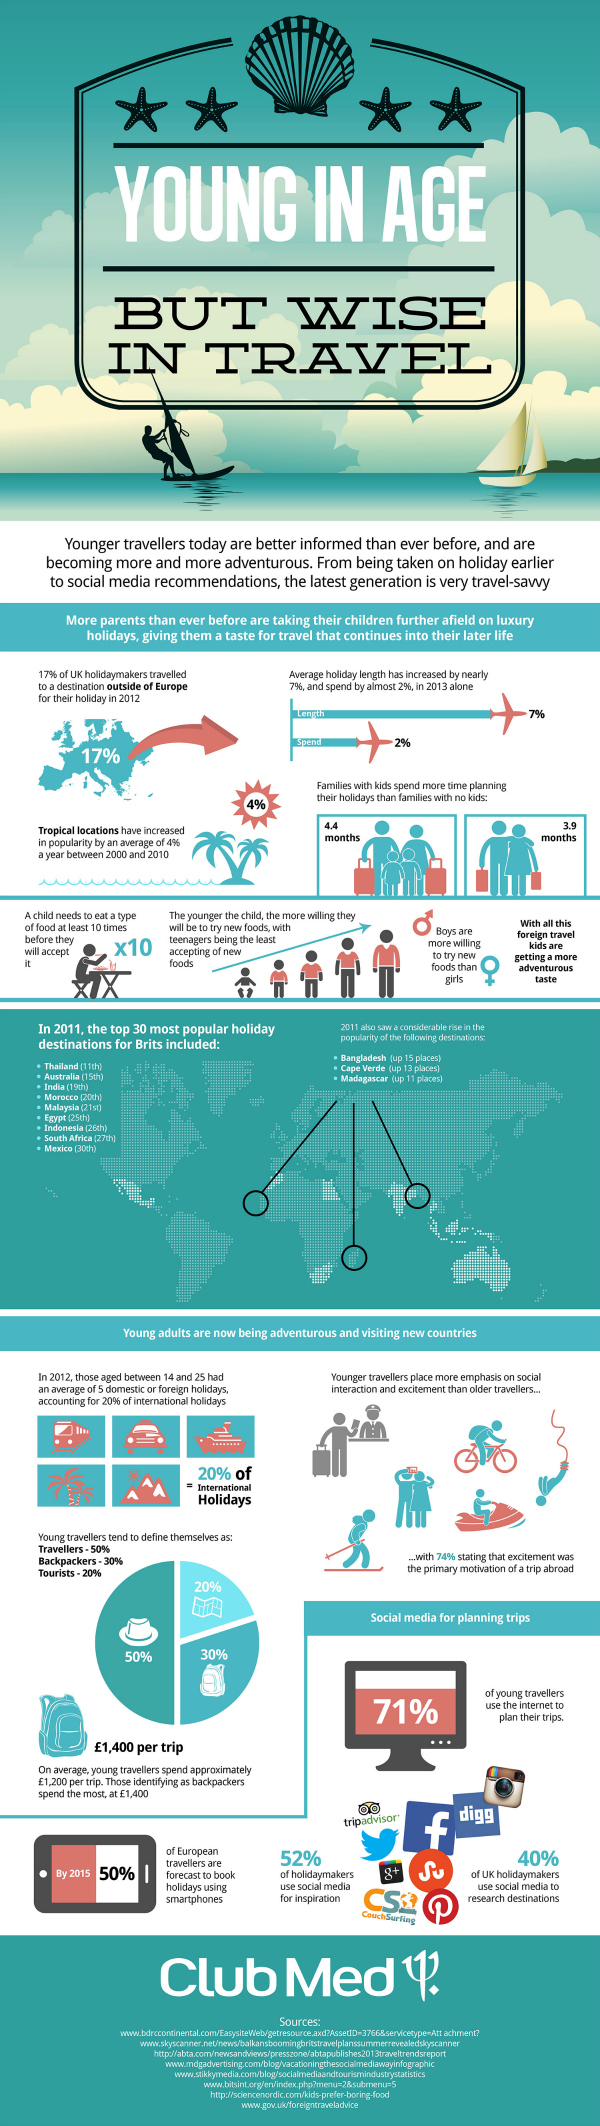 Club Med_travel_infographic